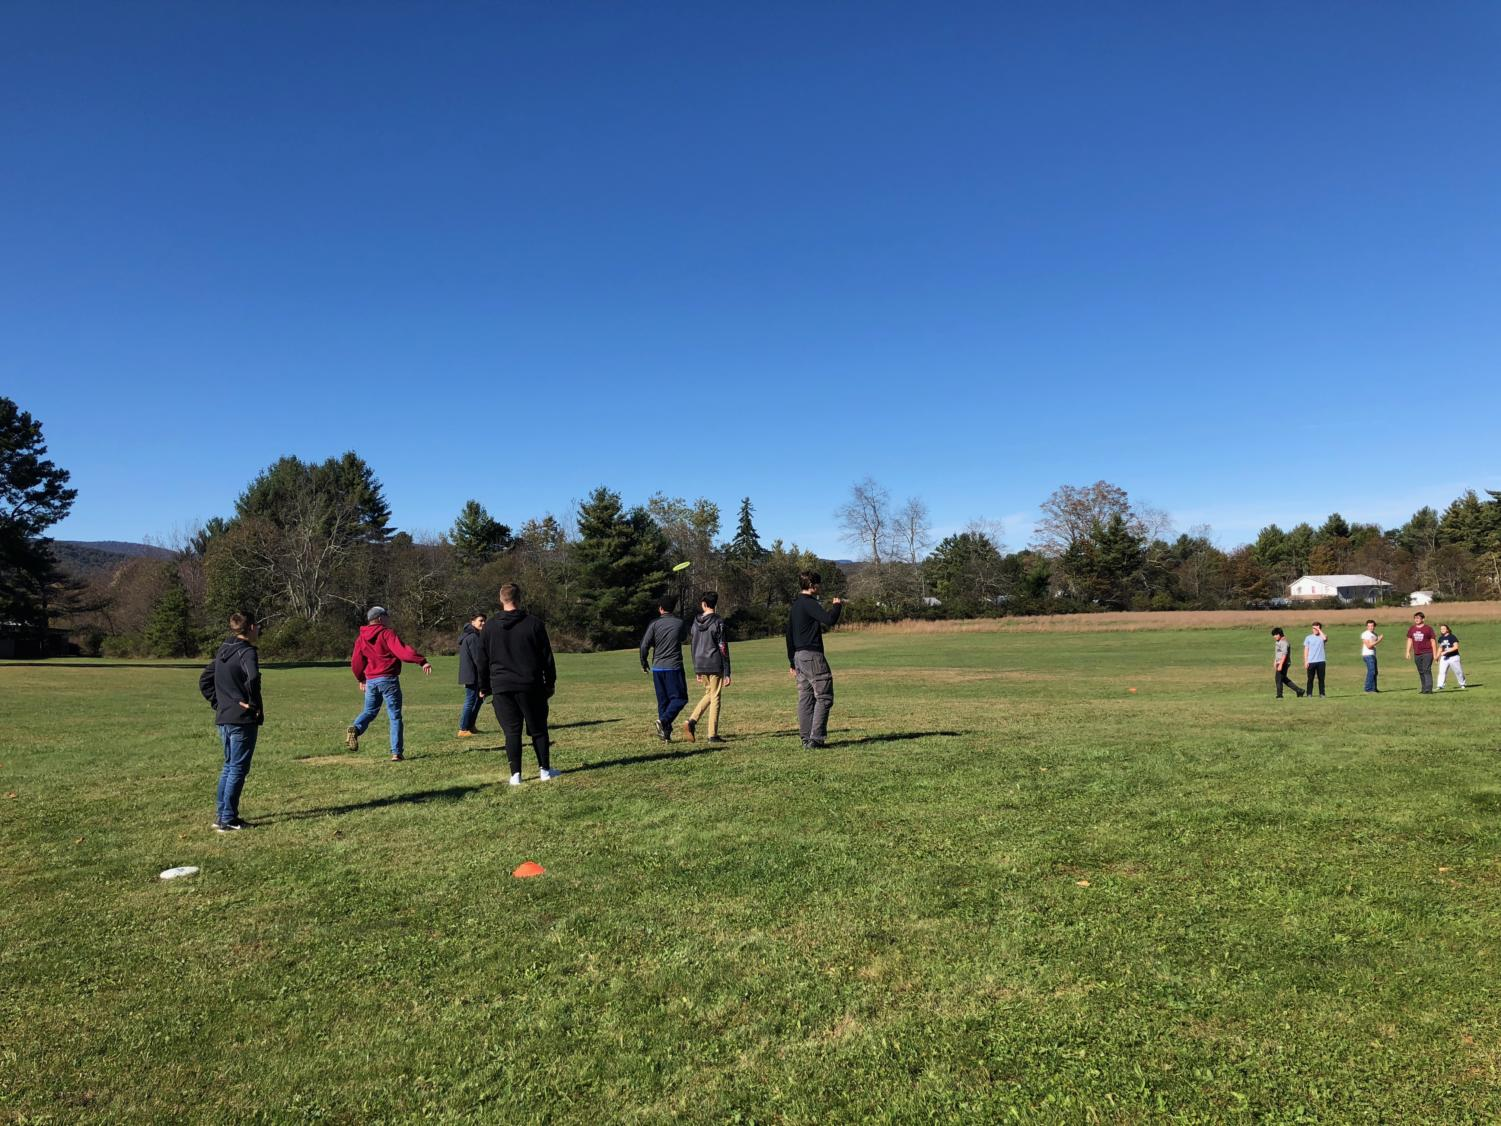 In+between+observation+shifts+and+activities%2C+students+played+games+like+football+and+frisbee+soccer.